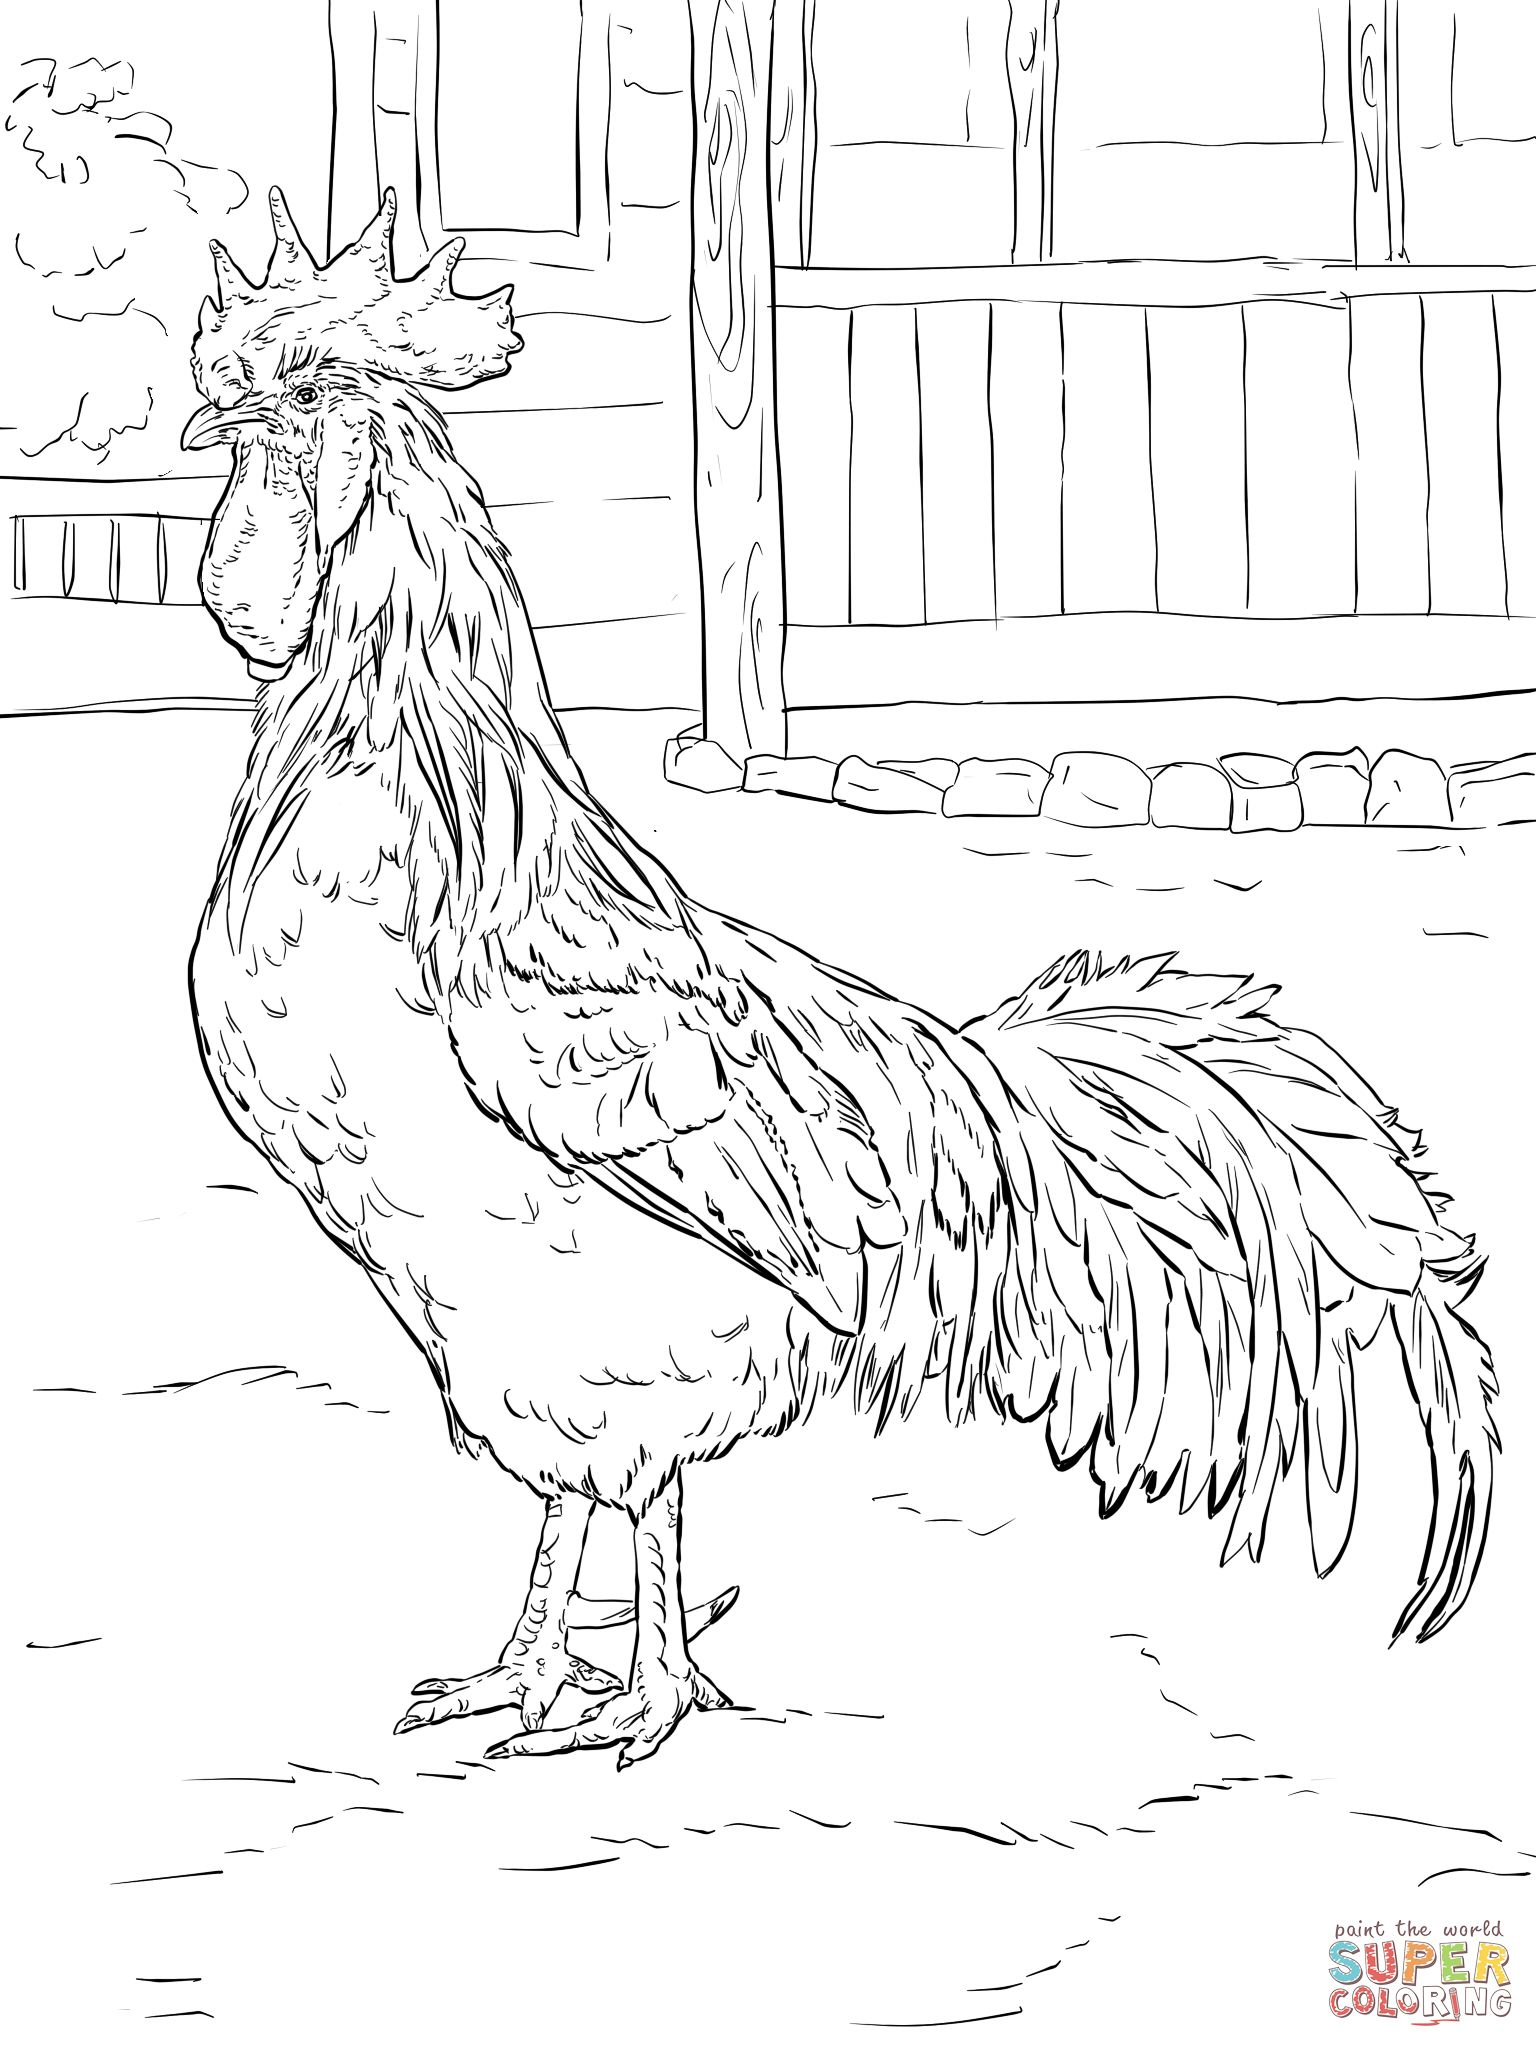 Brown Leghorn Rooster Coloring Page Supercoloring Com Animal